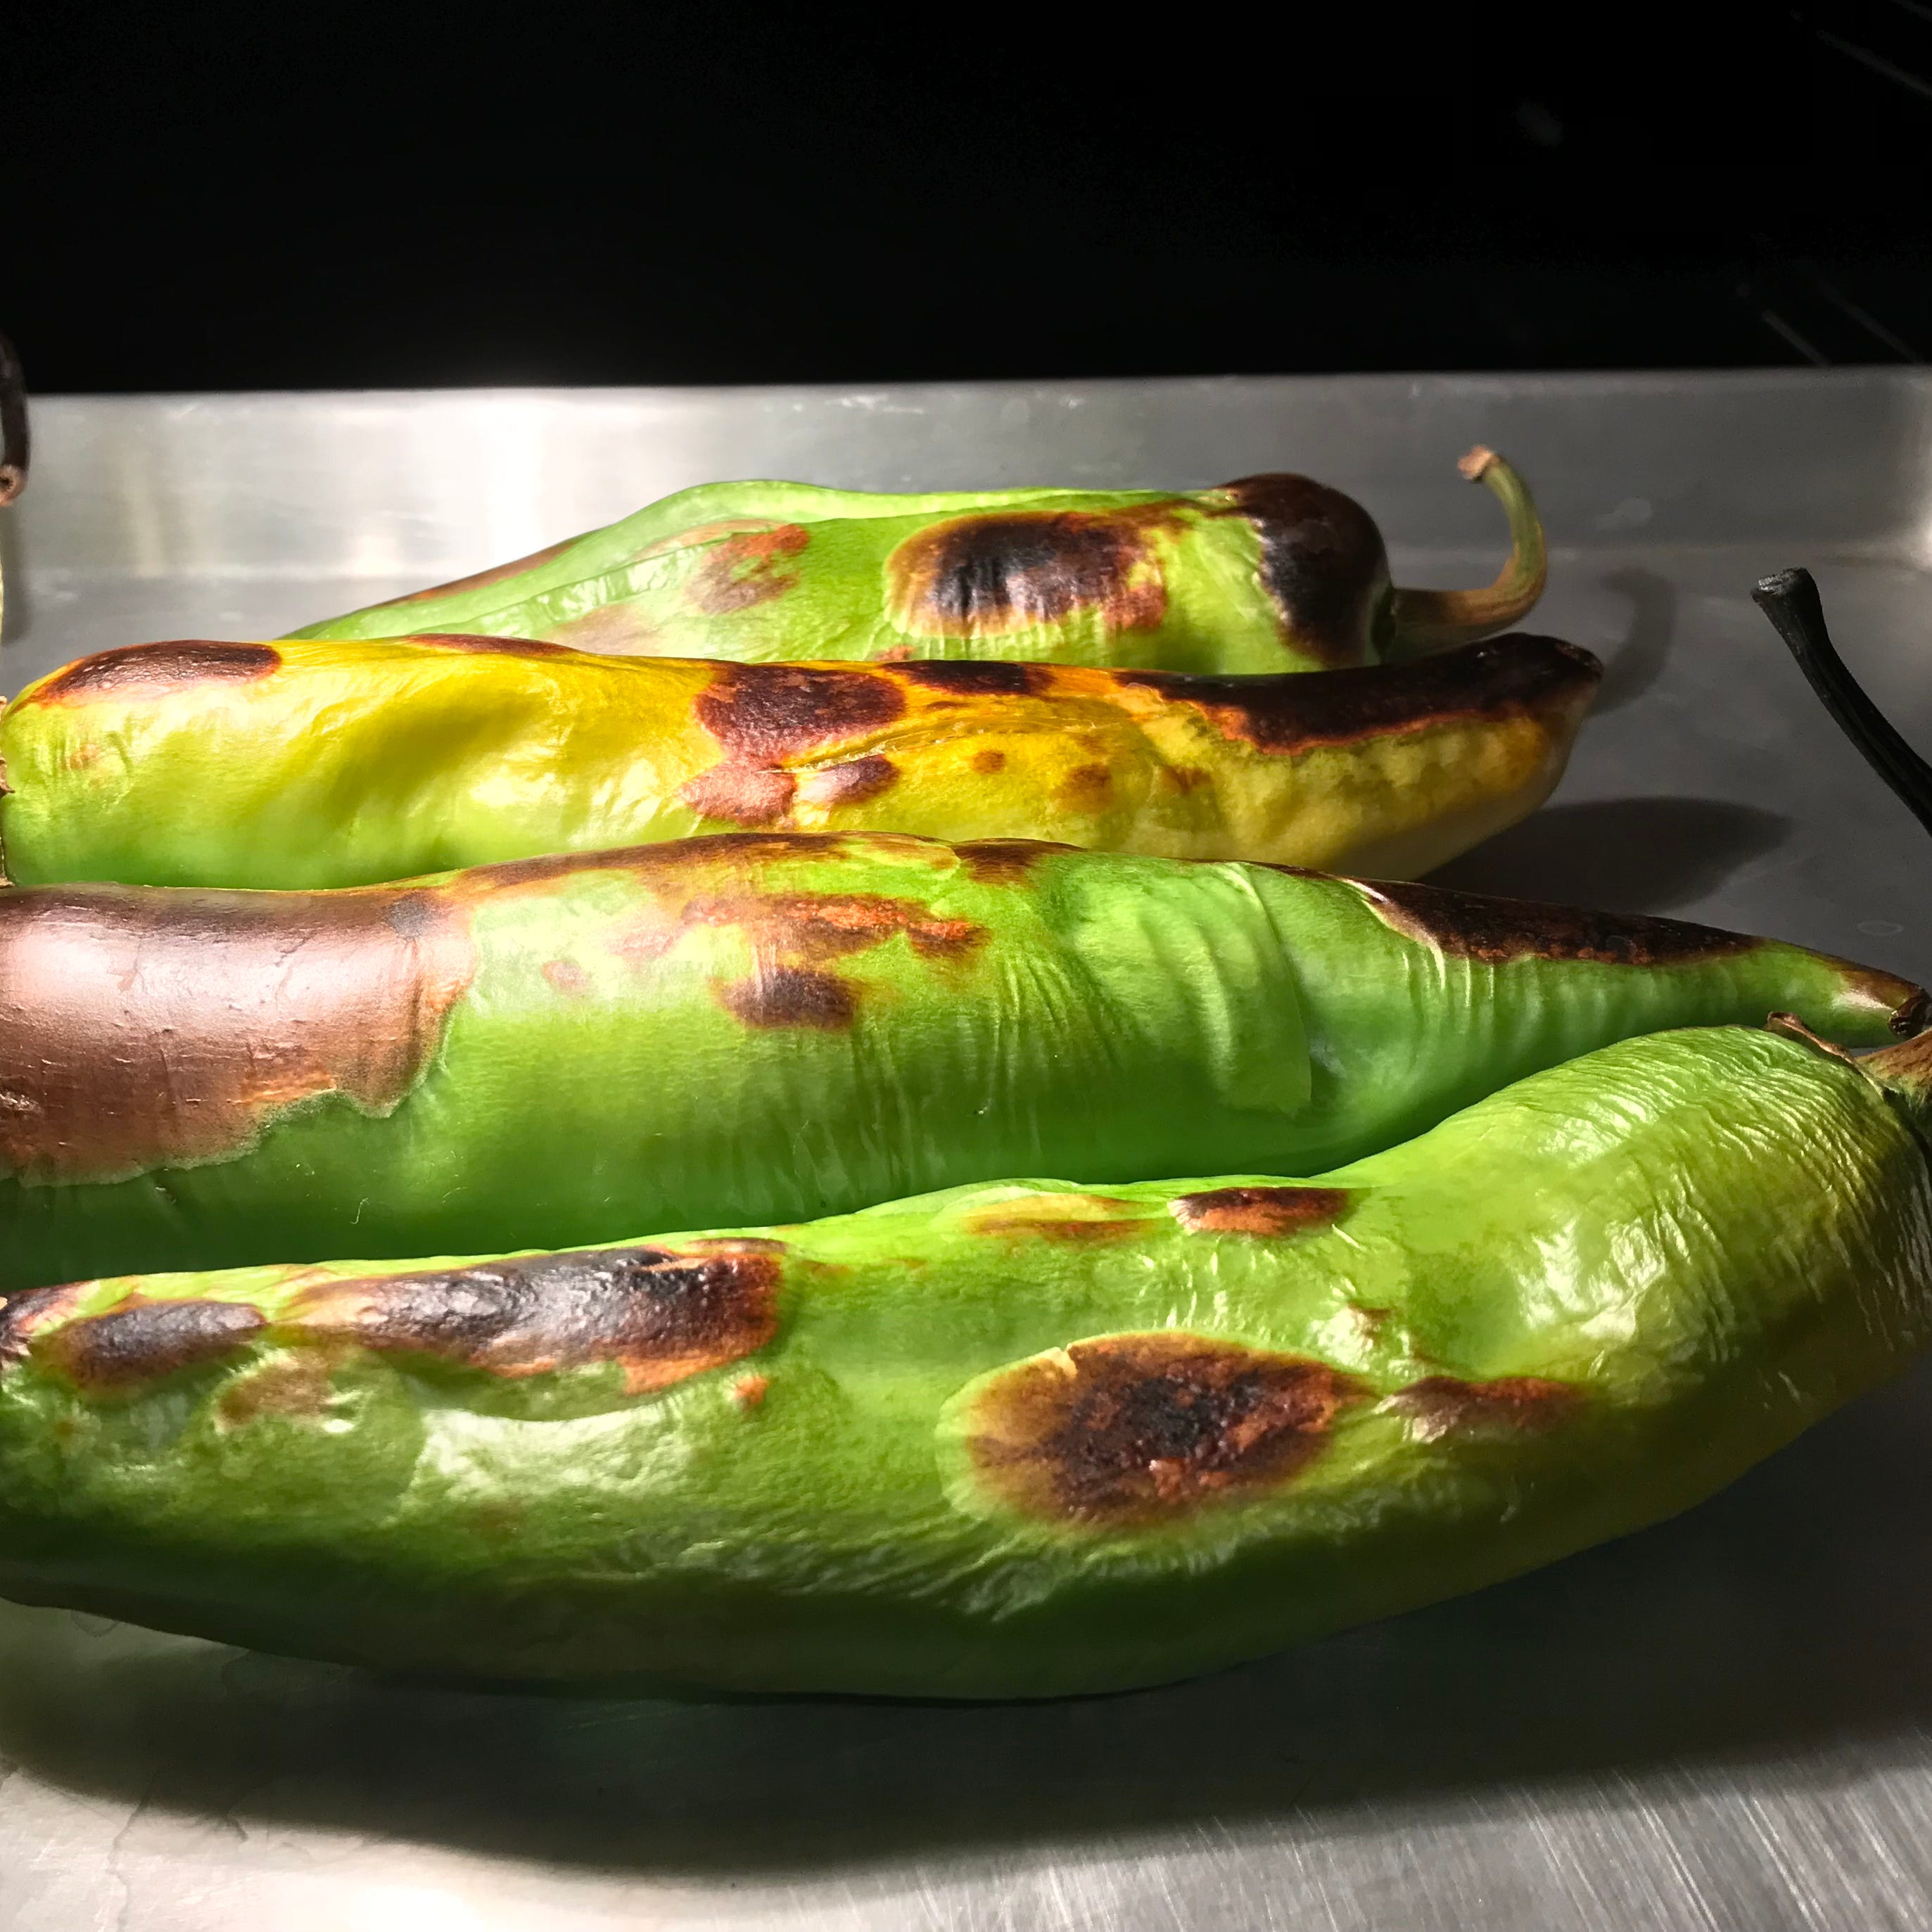 Freshly roasted green chilies bring the heat and flavor